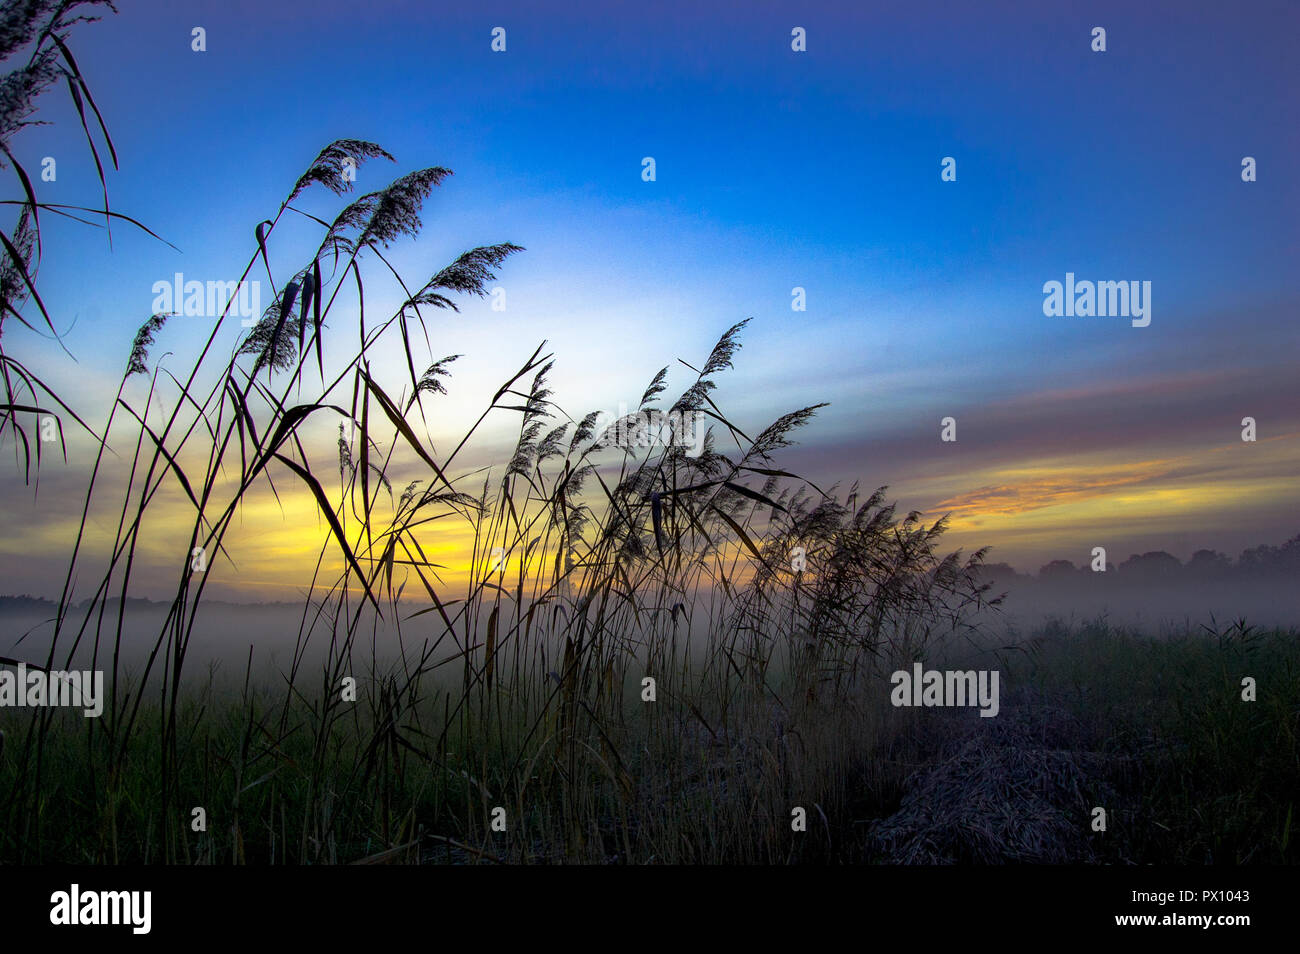 misty reeds during sunset on a background of colorful clouds, common reed landscape with fog - Stock Image